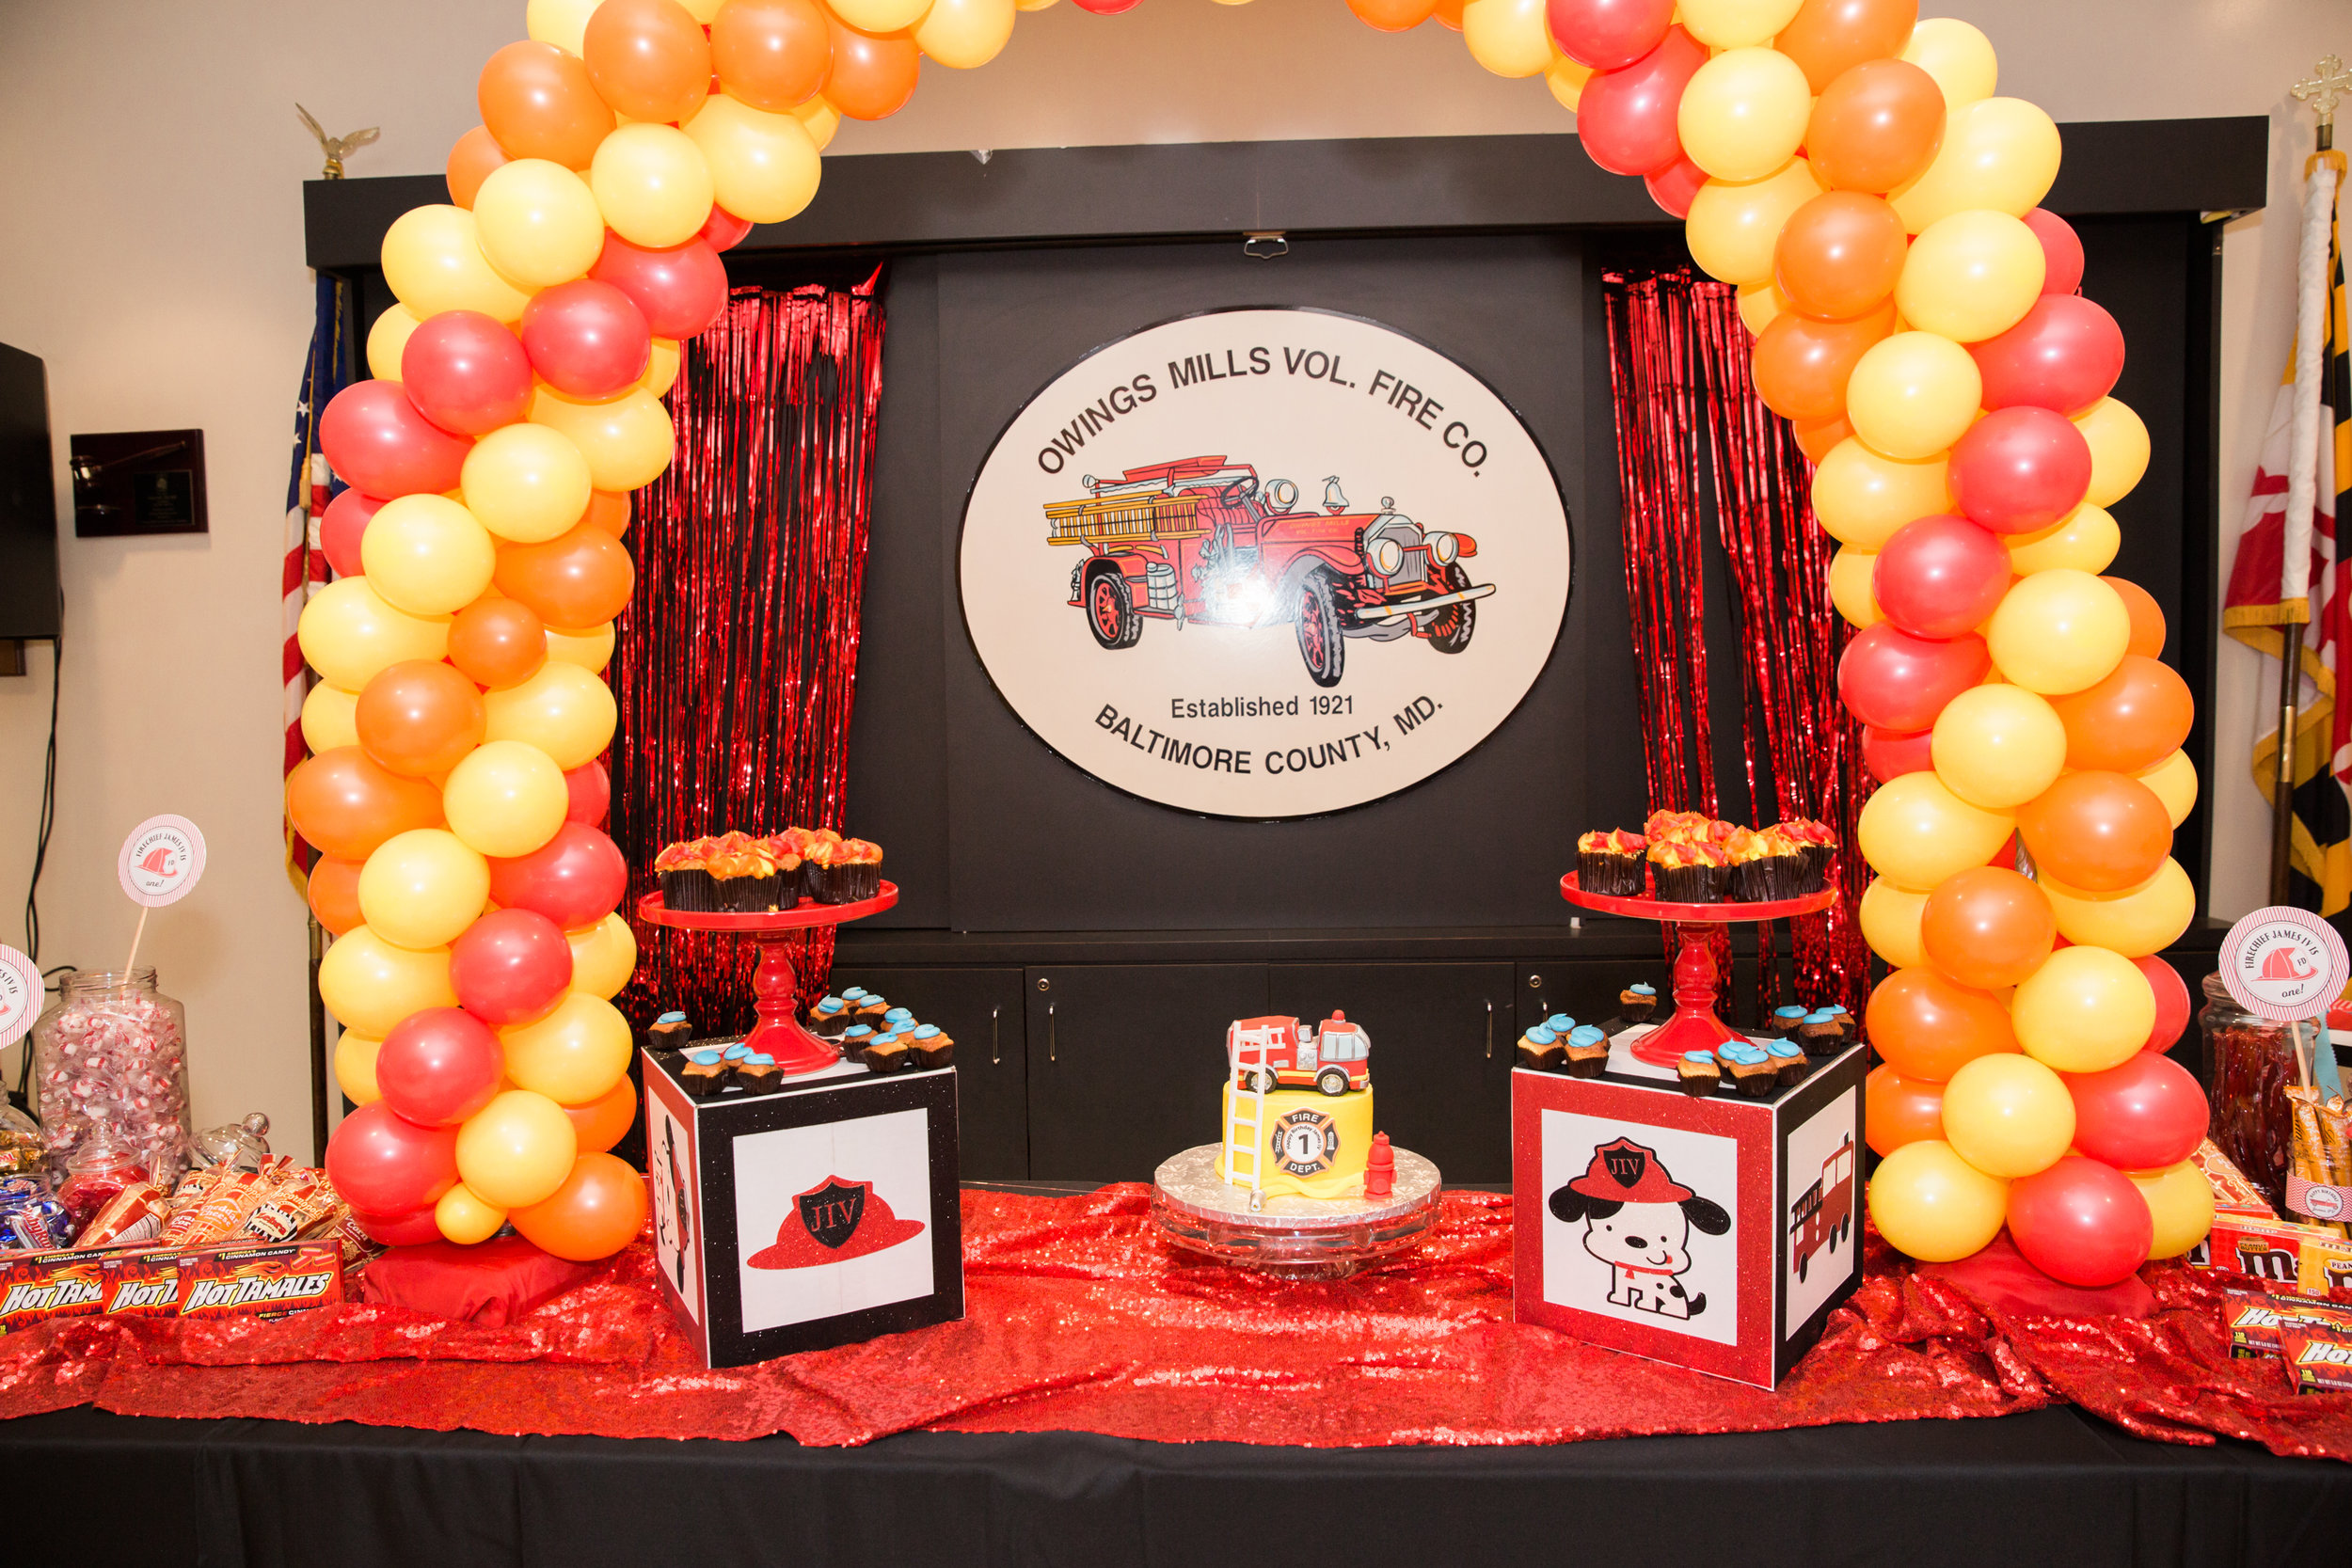 Fireman Birthday Party Ideas  Decorations Owings Mills Fire Department Maryland Family Photographers Megapixels Media Photography (41 of 55).jpg